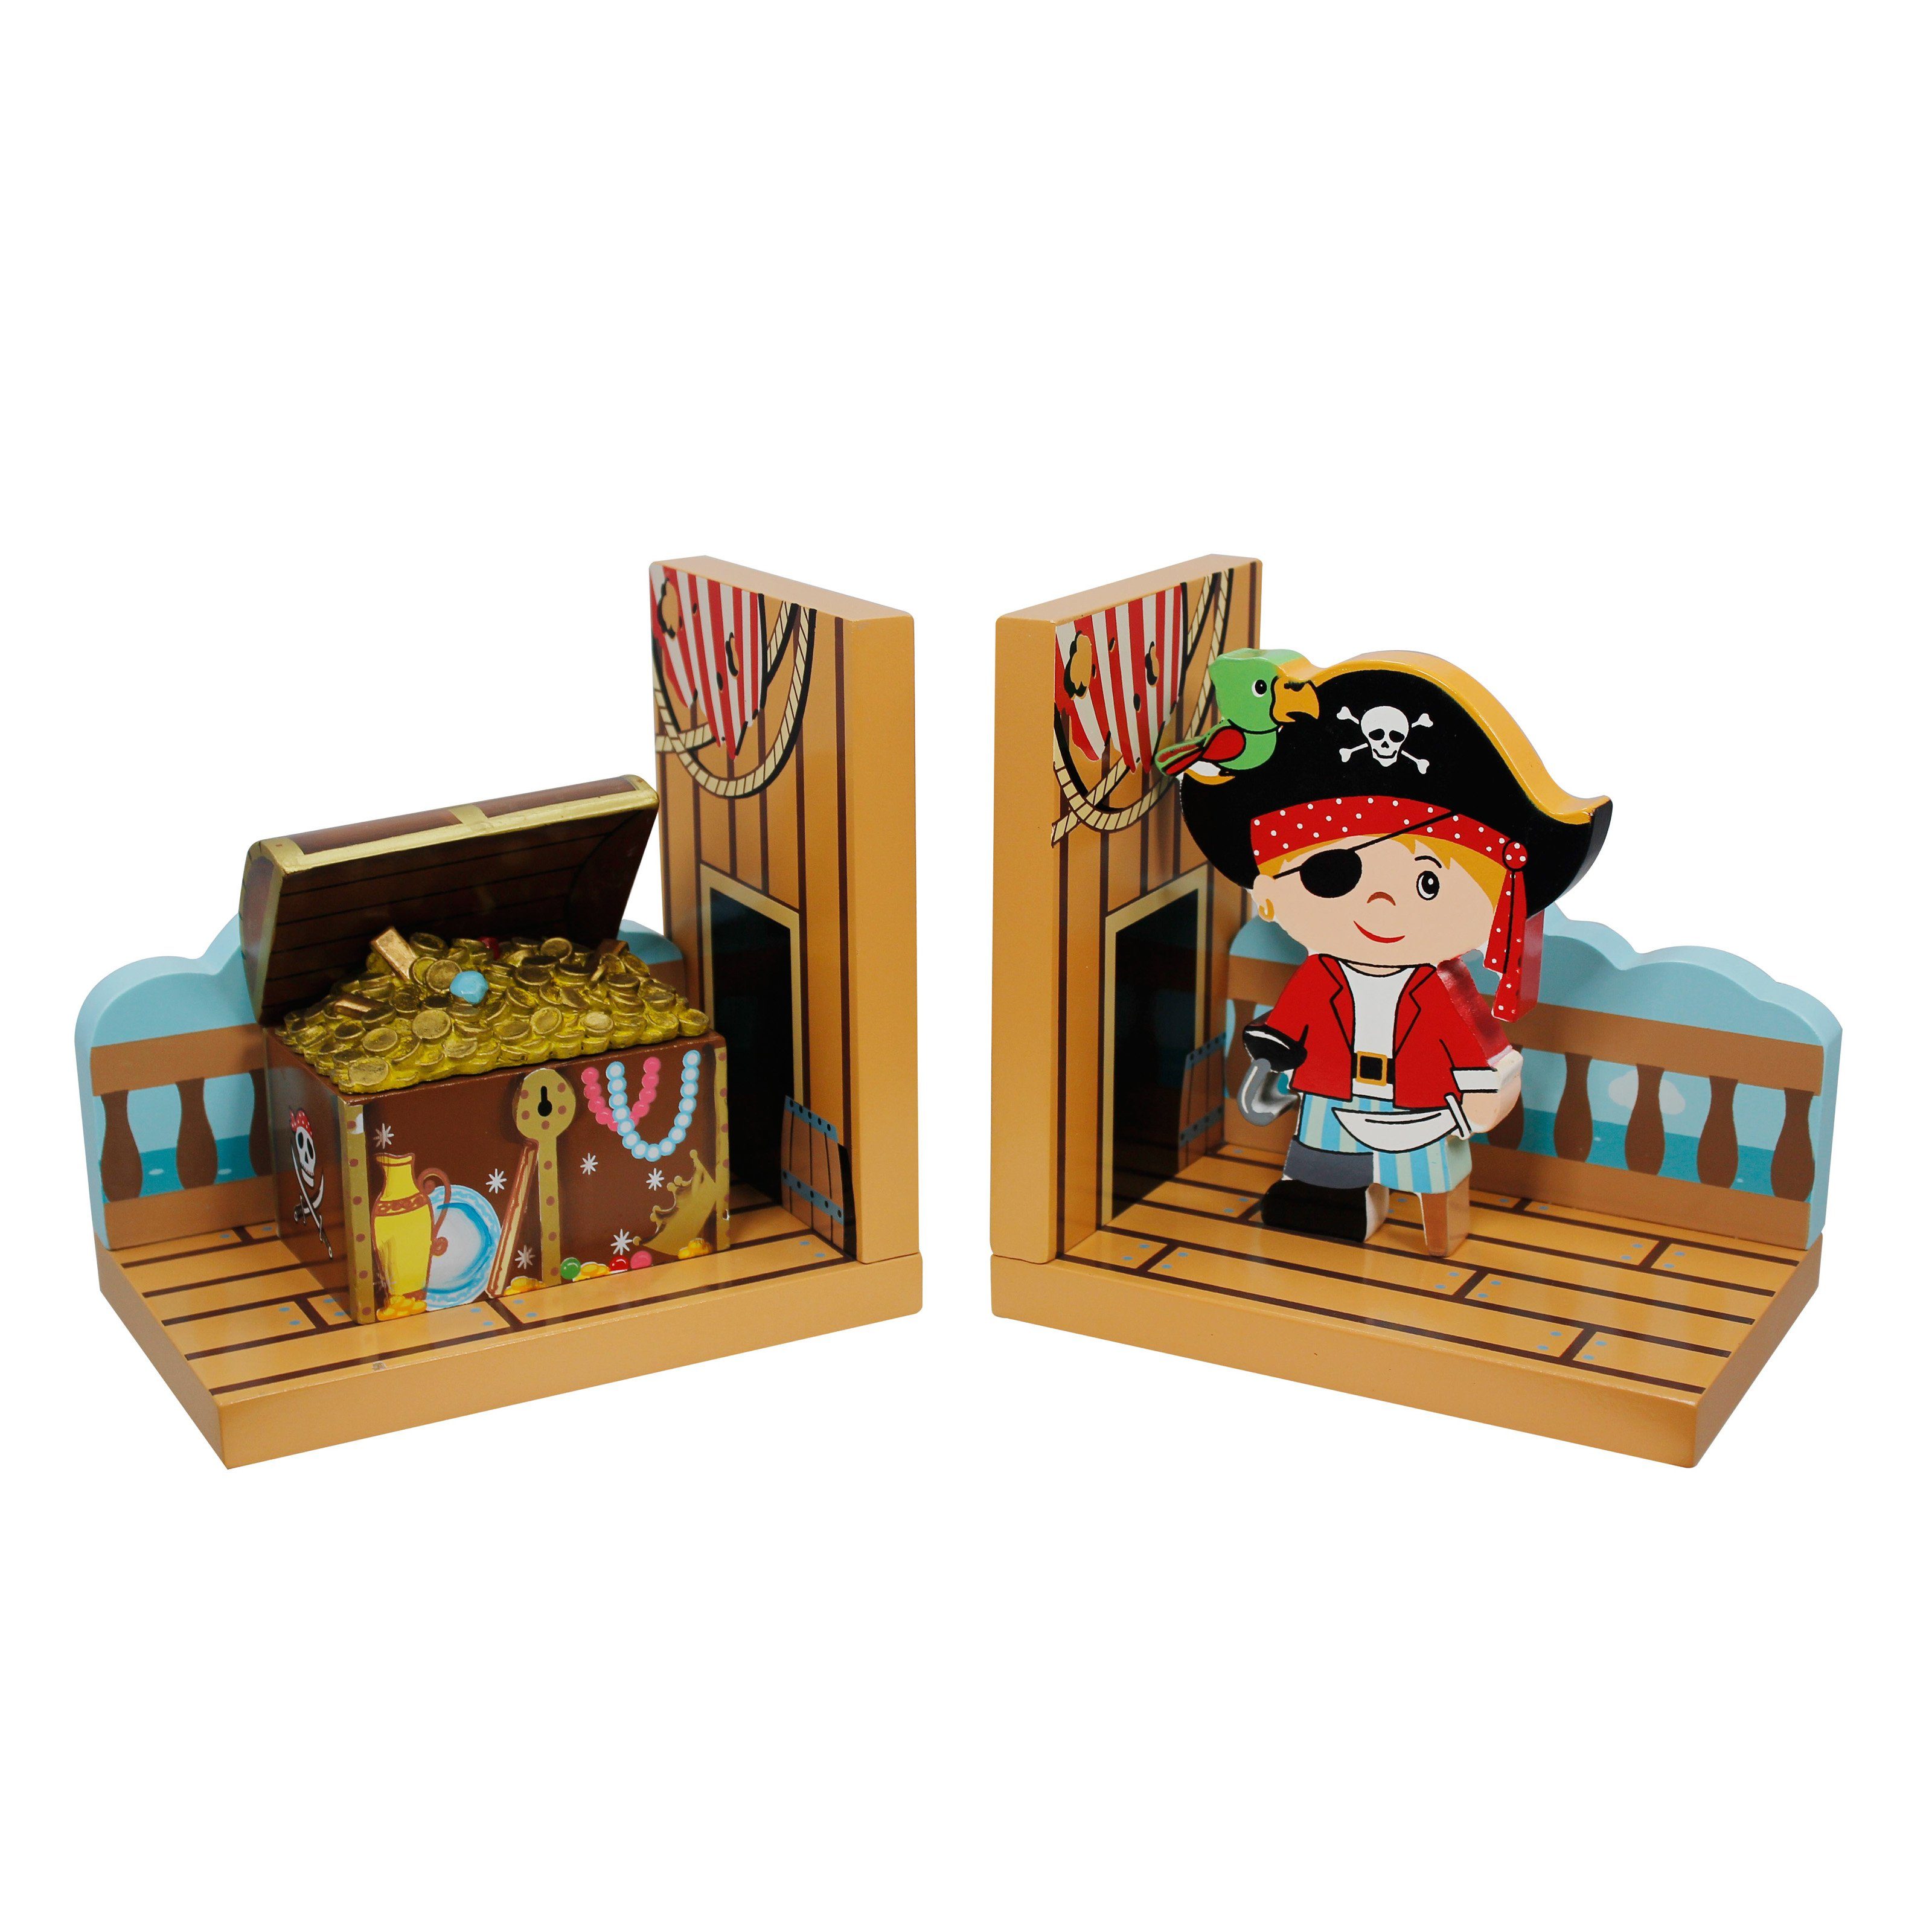 Fantasy Fields Pirate Island Set of Bookends by Teamson